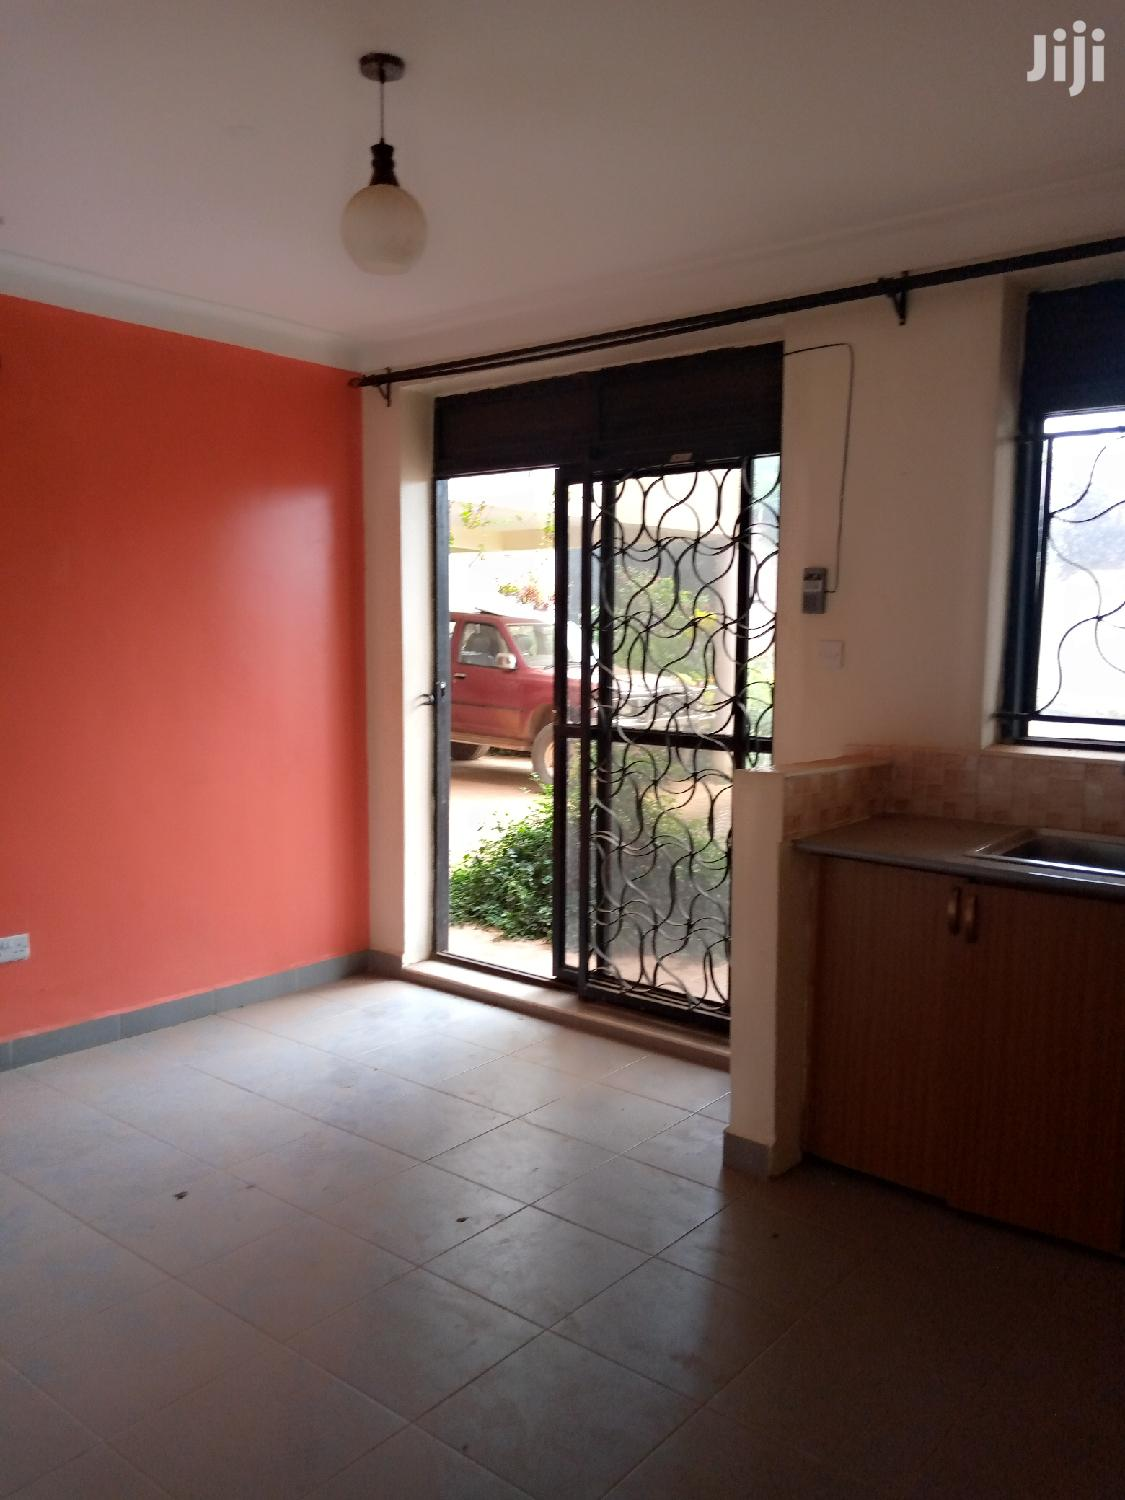 Najjera Double Room for Rent | Houses & Apartments For Rent for sale in Kampala, Central Region, Uganda